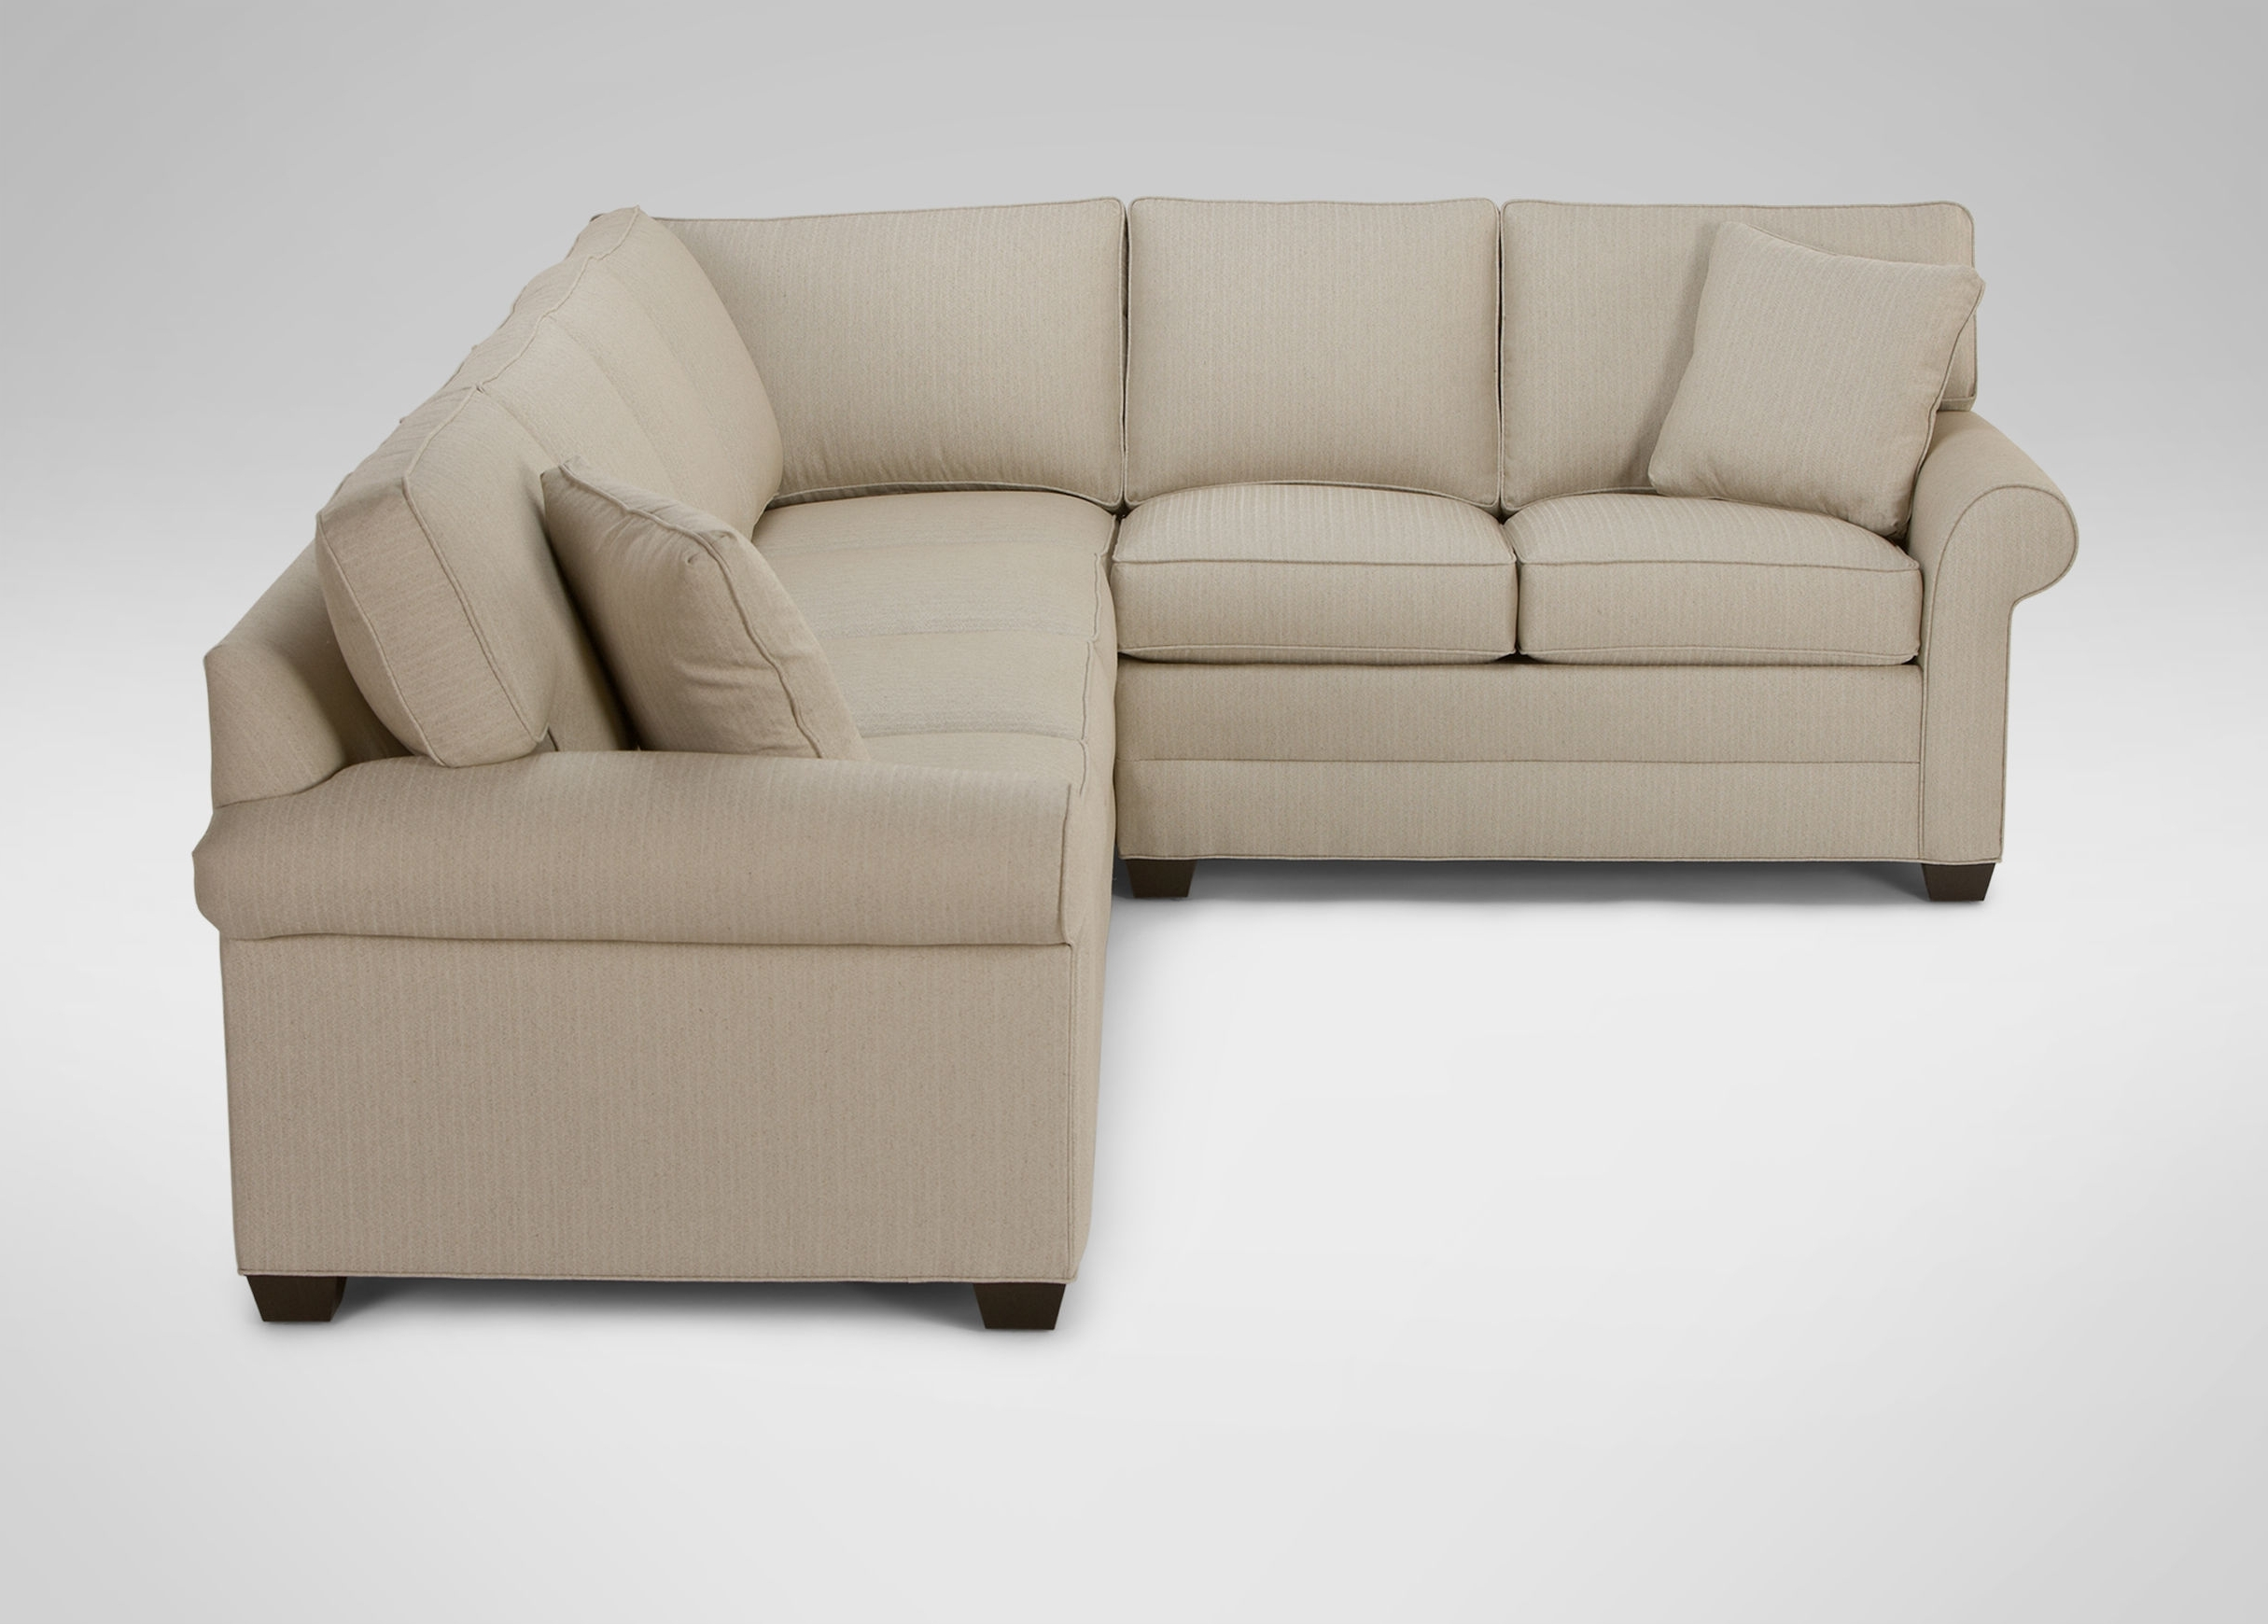 Best And Newest Sectional Sofa Design: Best Ethan Allen Sectional Sofa Ever Ethan For Sectional Sofas At Ethan Allen (View 4 of 20)